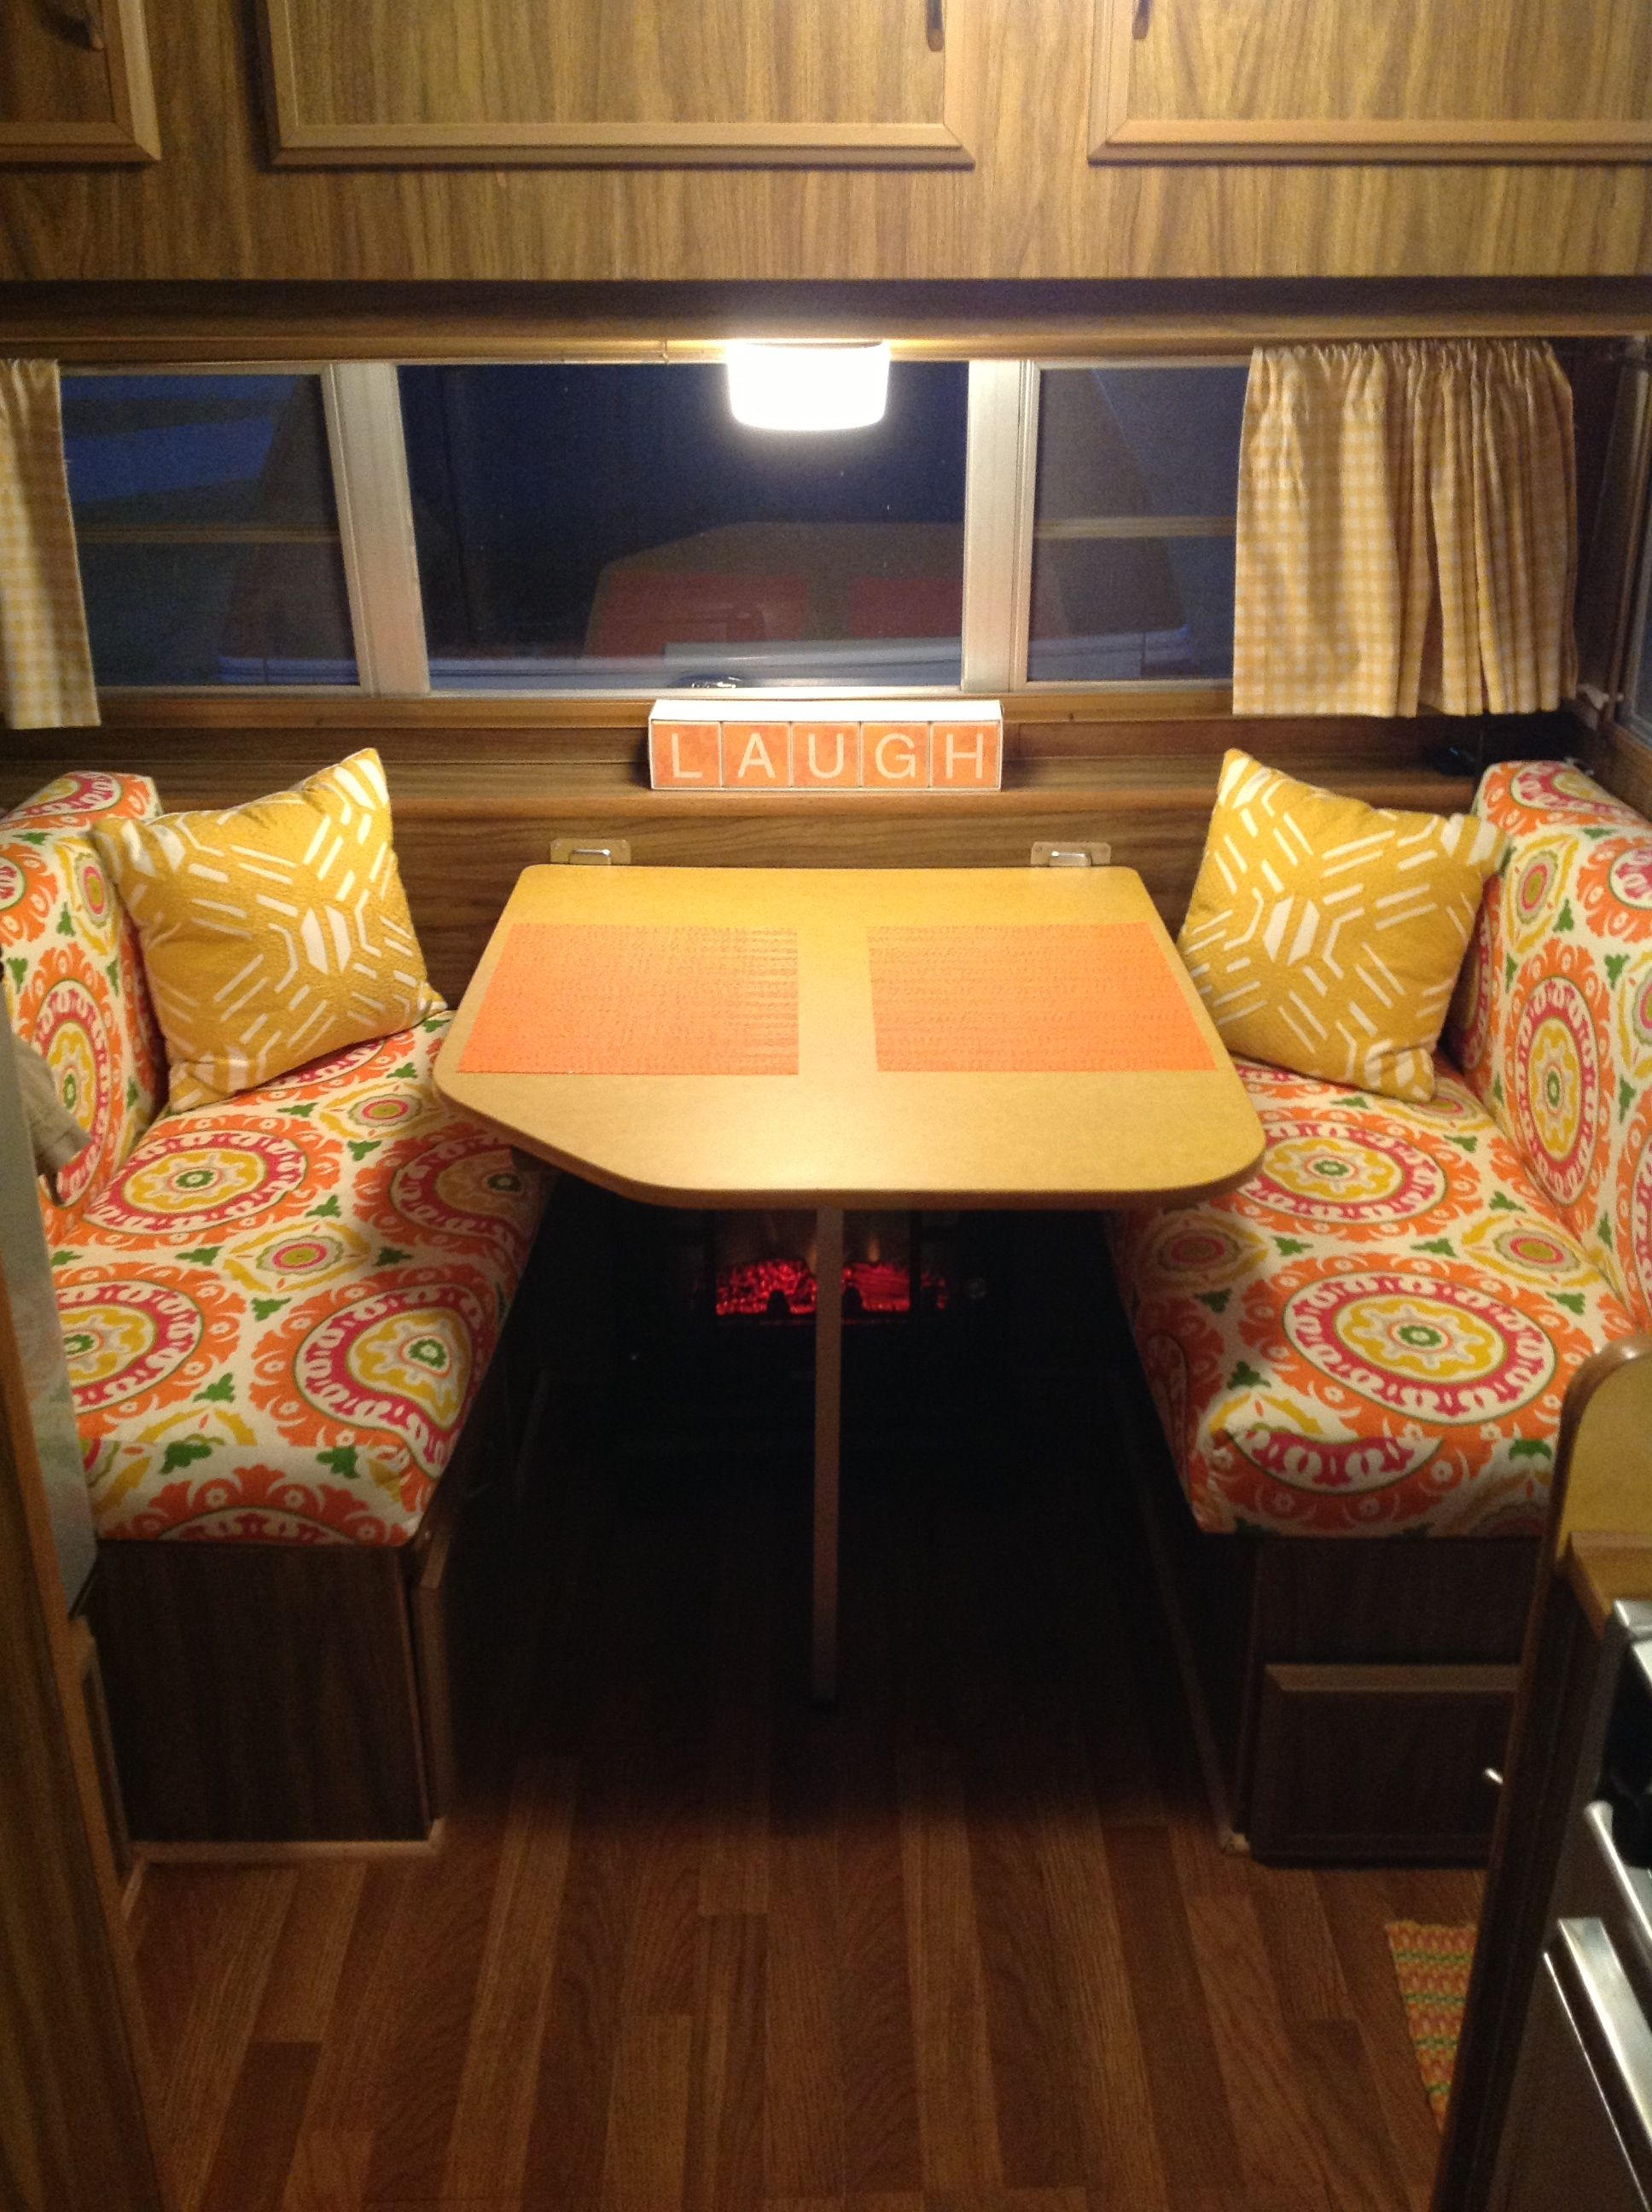 1976 Prowler with new wood floor, cushions, curtains